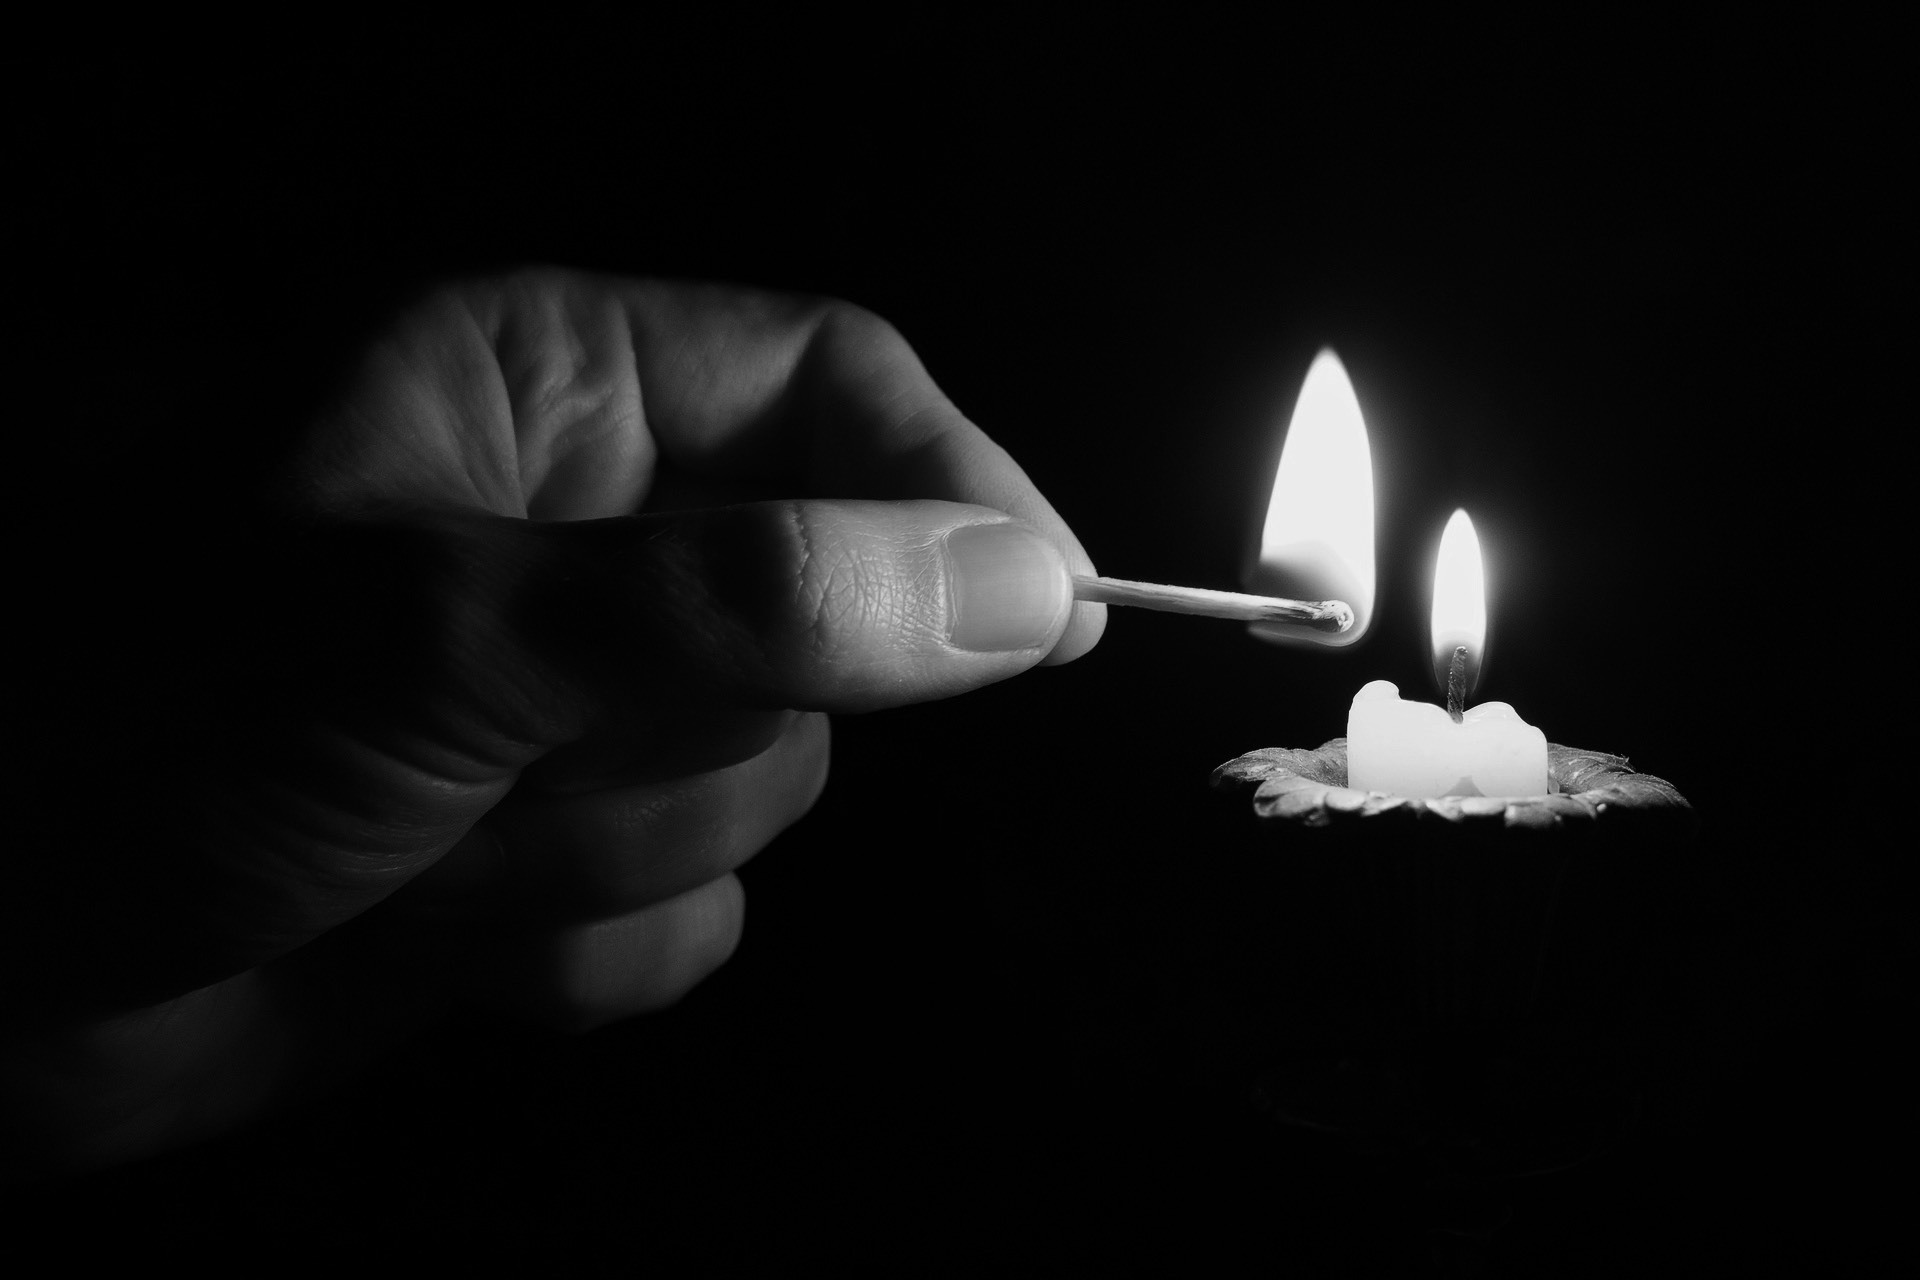 Candle hand bw